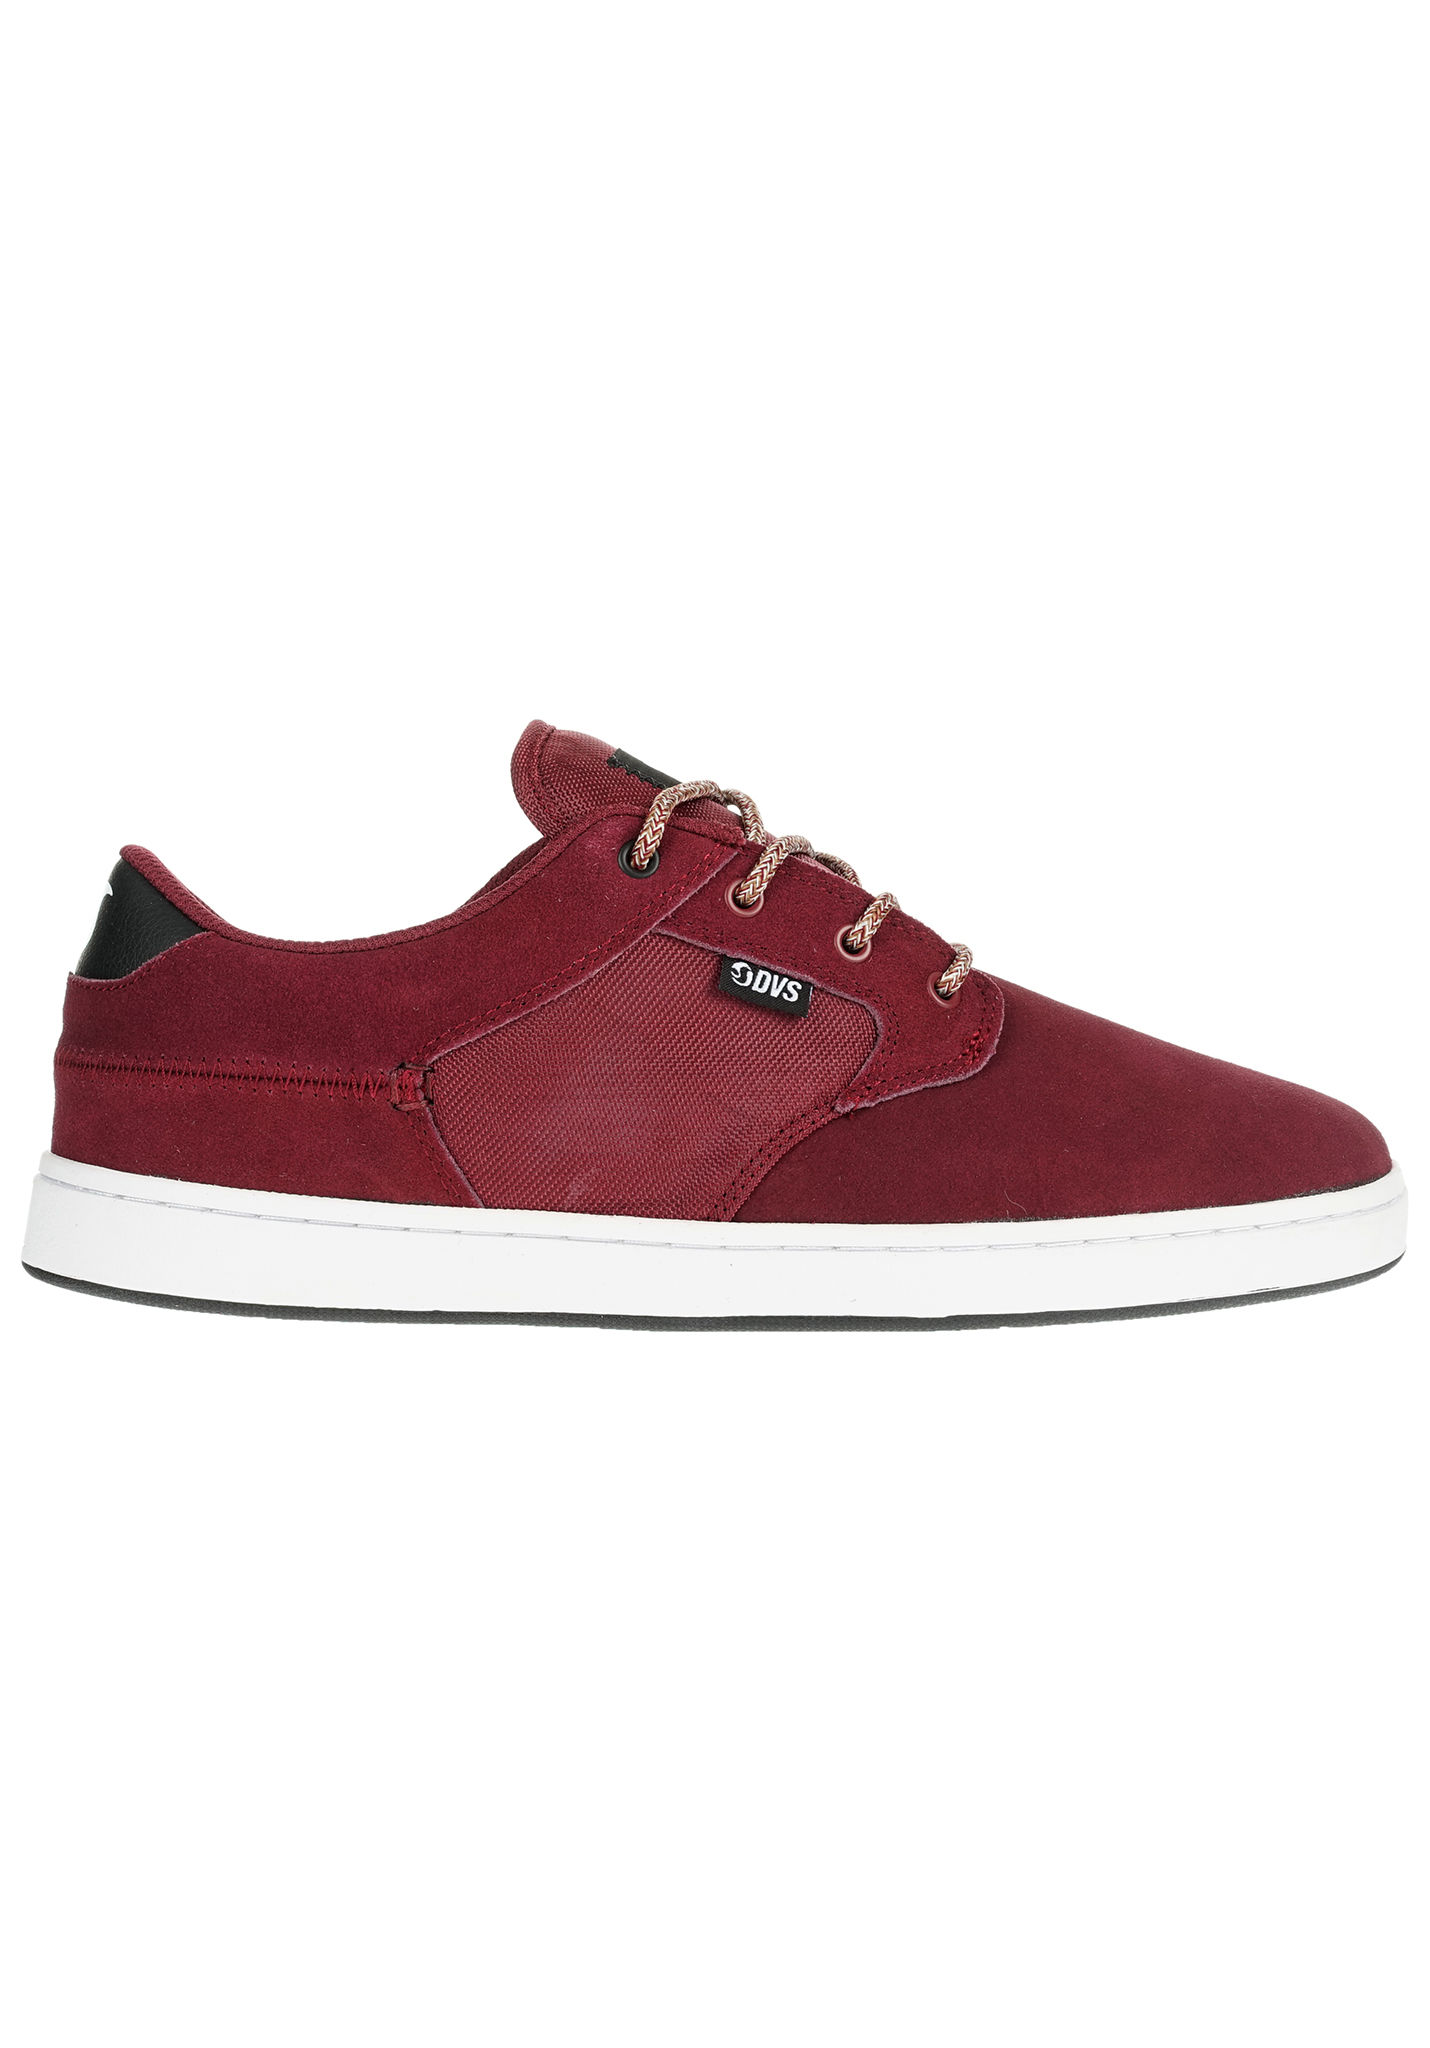 DVS Quentin Sneakers for Men Red